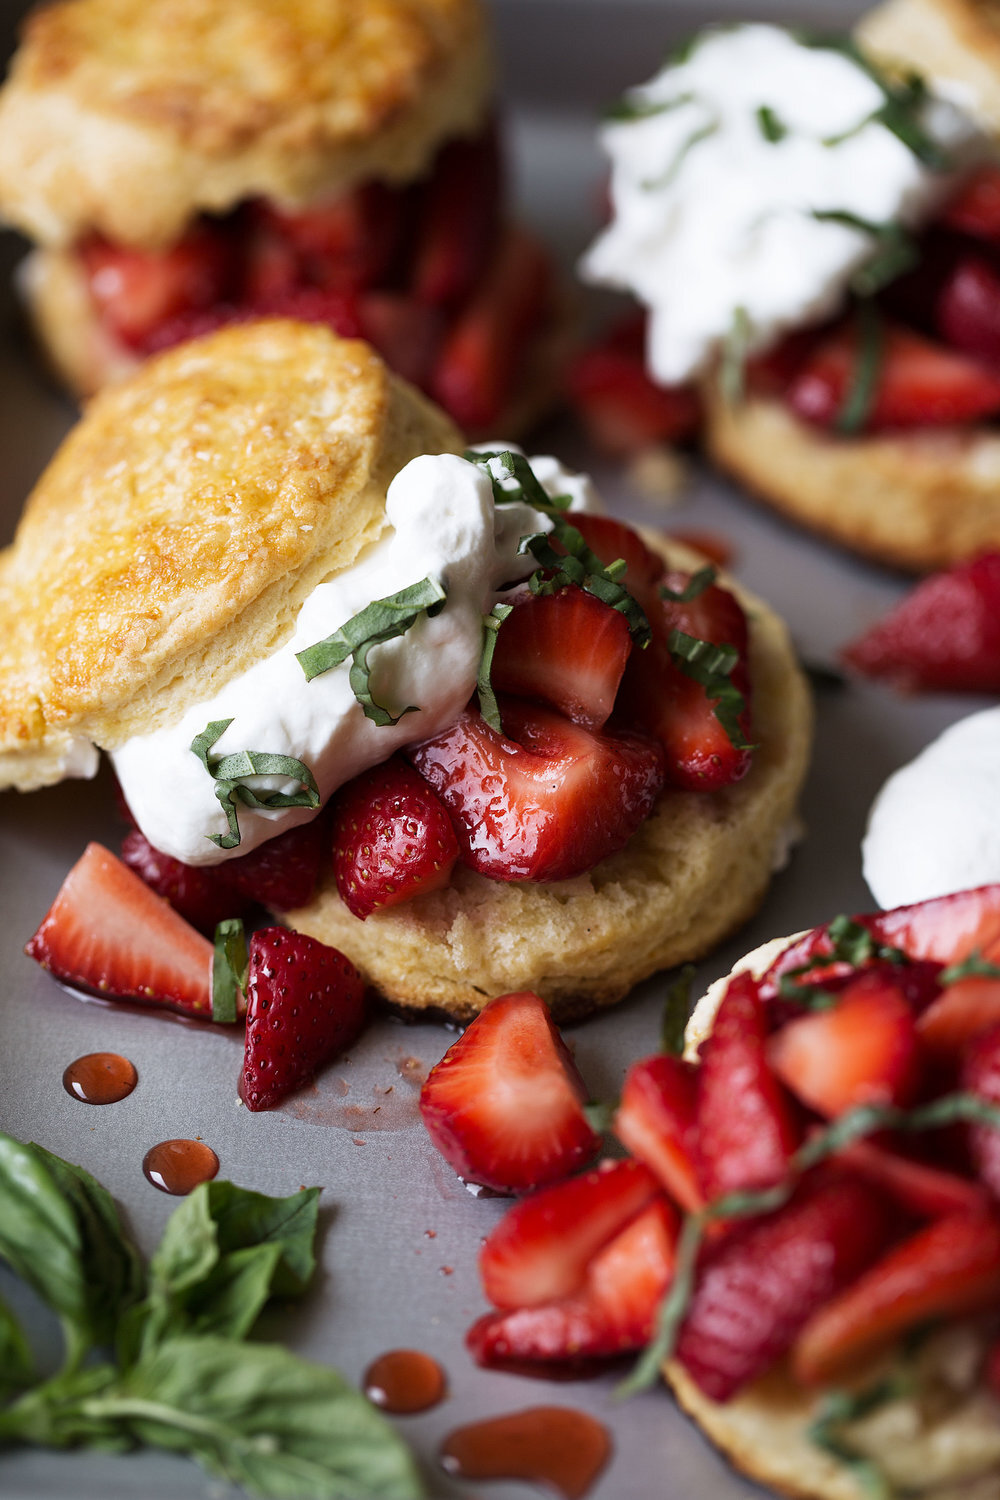 Strawberry Balsamic Shortcake with Basil